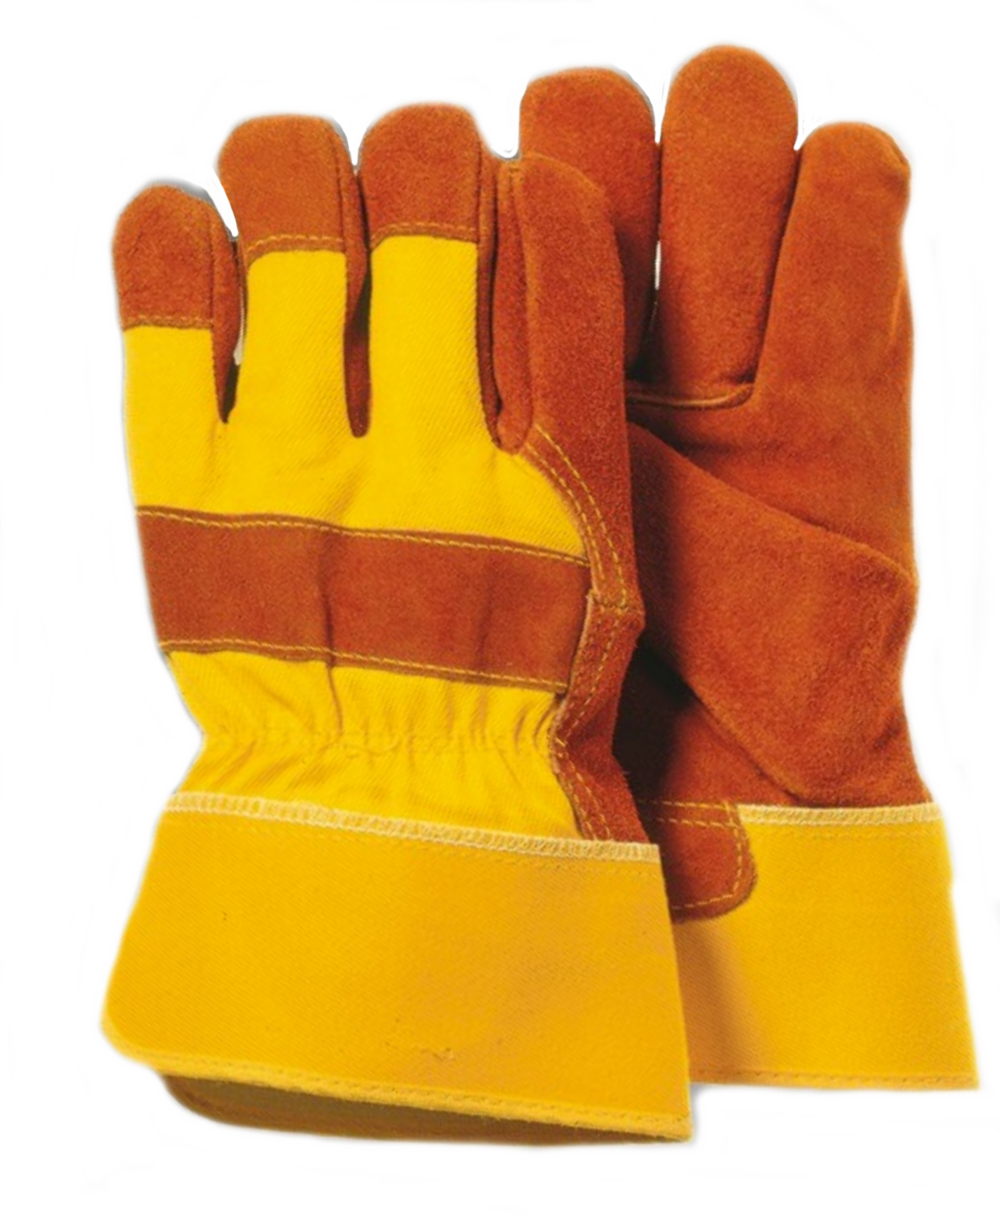 Insulated leather work gloves amazon - Rough Rider Leather Work Gloves Majestic 4501y Split Cowhide Leather Work Gloves Safety Cuff Yellow